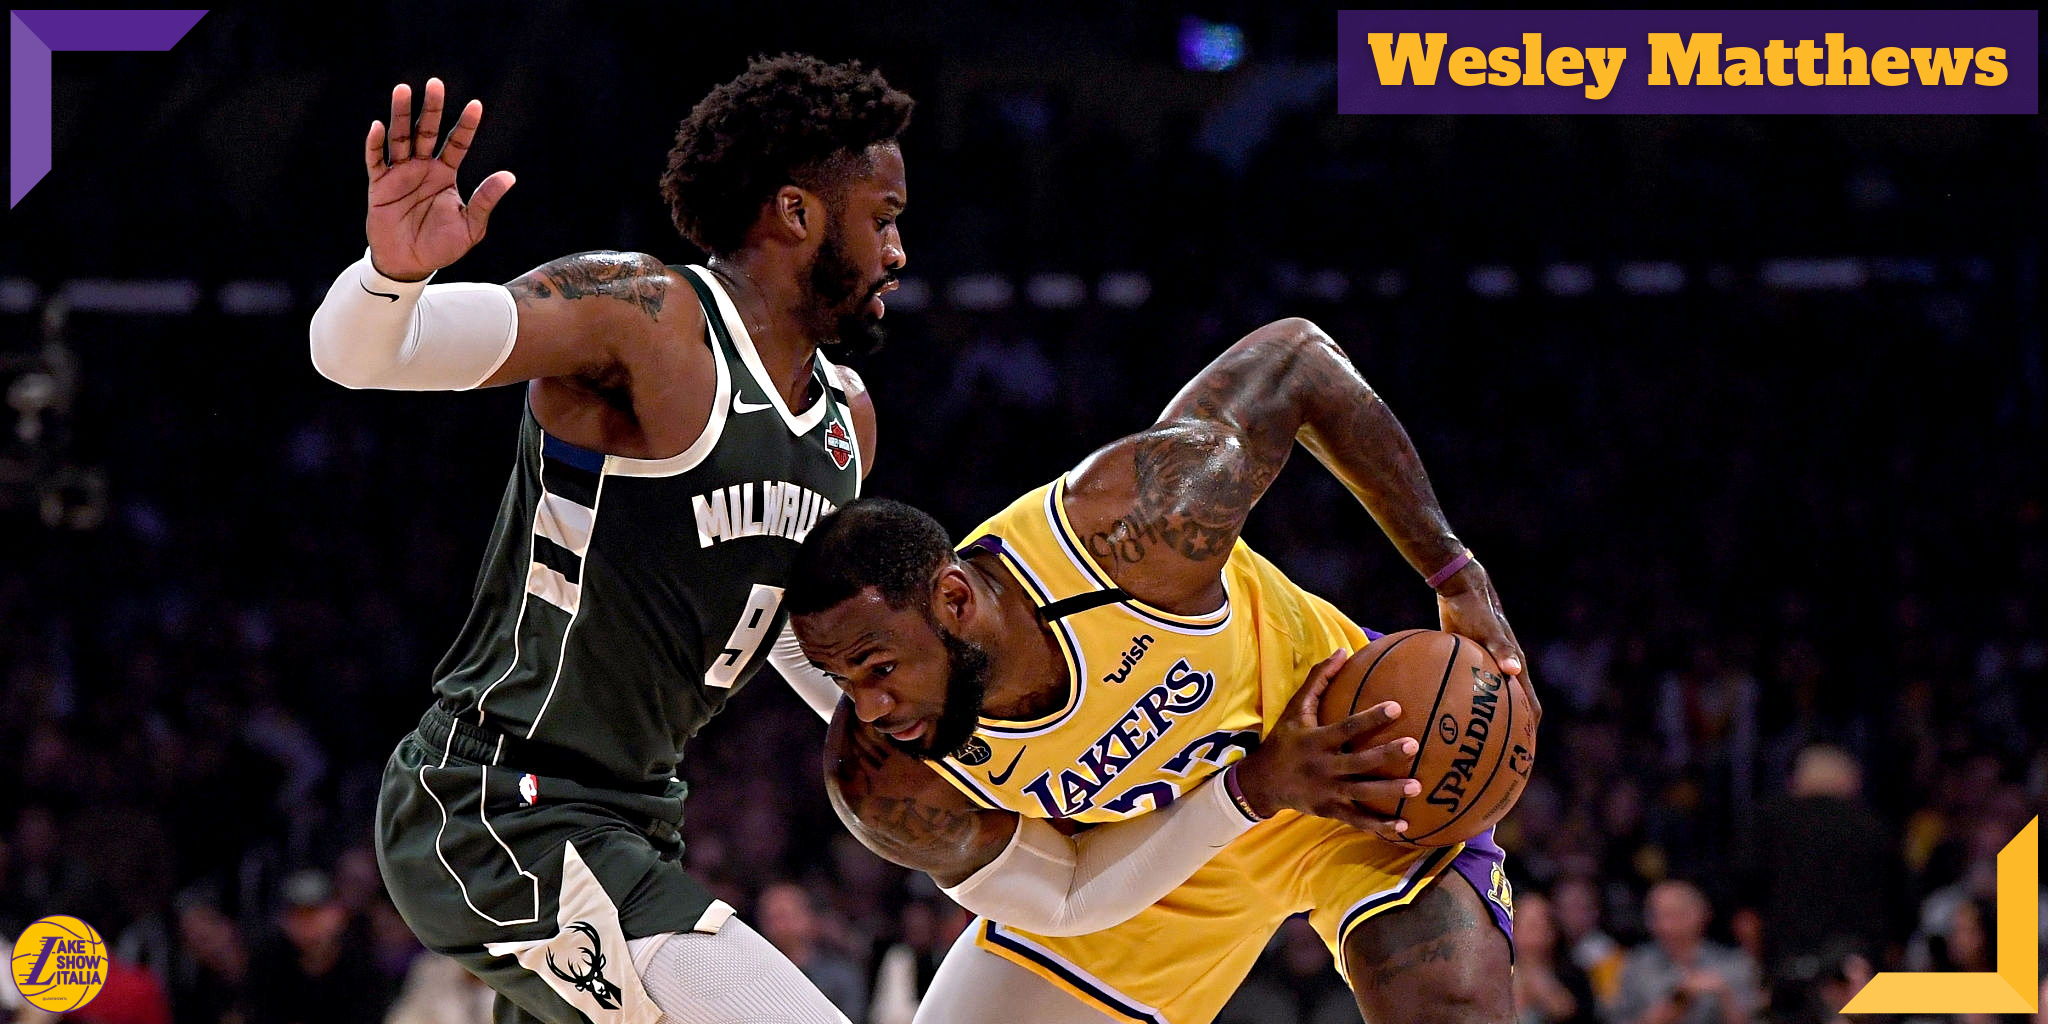 LeBron James #23 of the Los Angeles Lakers is guarded by Wesley Matthews #9 of the Milwaukee Bucks during the first half at Staples Center on March 06, 2020 in Los Angeles, California. (Harry How, Getty Images)